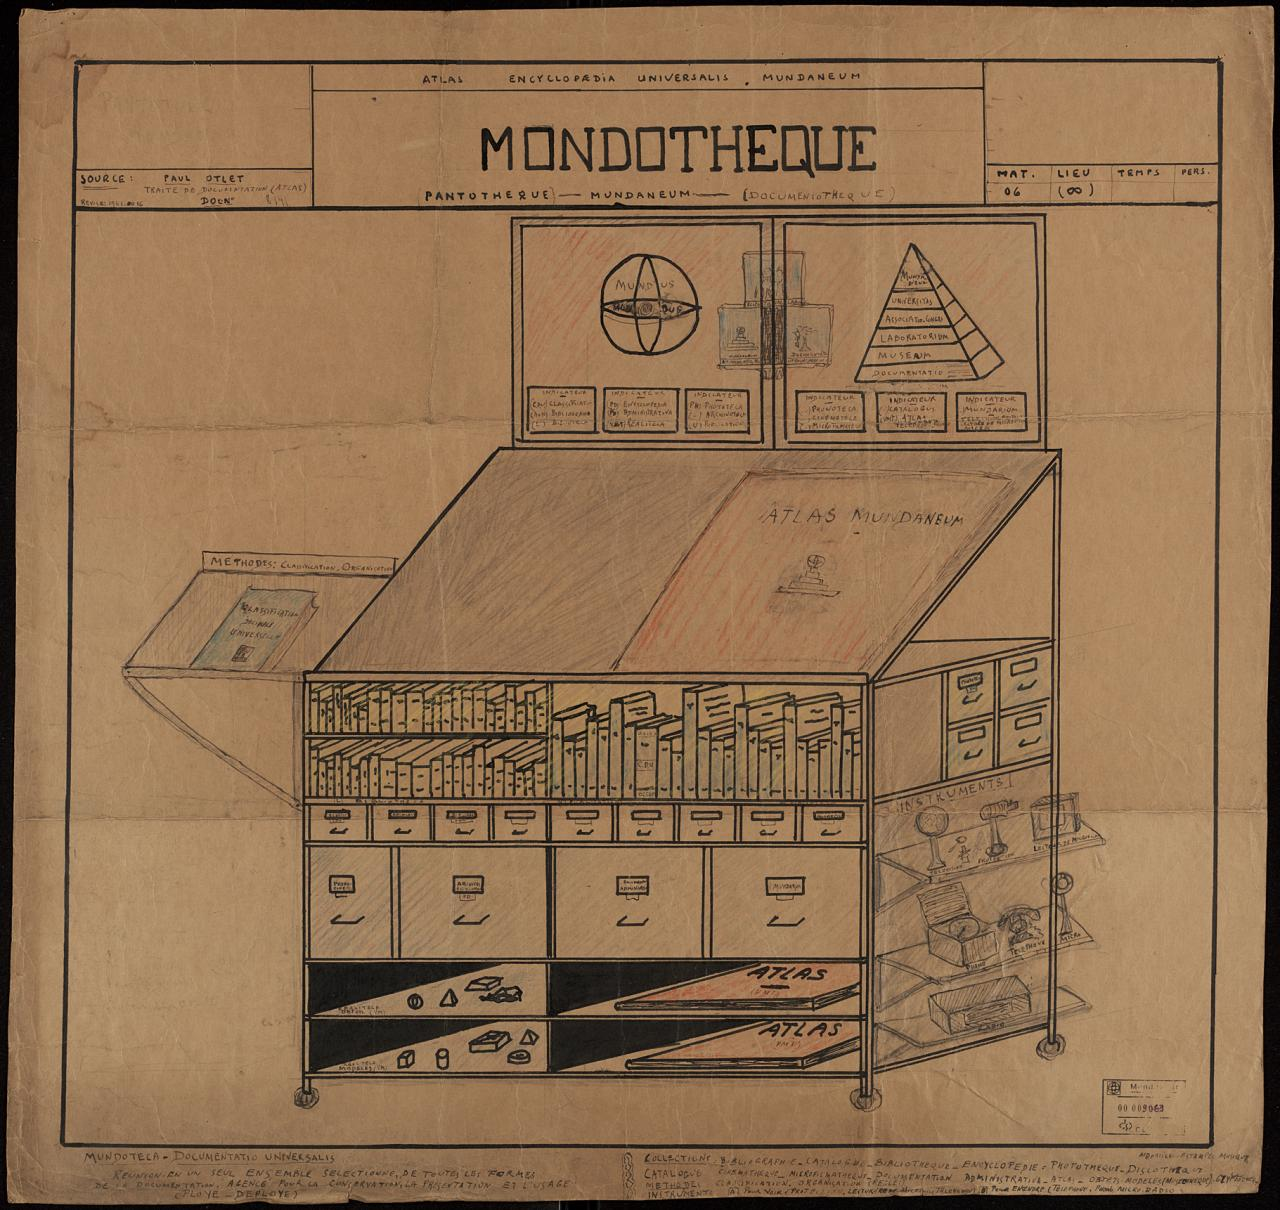 """"""" Mondotheque """", Paul Otlet'svision for a home multimedia workspace connected to a fully integrated global information network, a proto-internet of automated cross-references, one node in a larger world mind."""